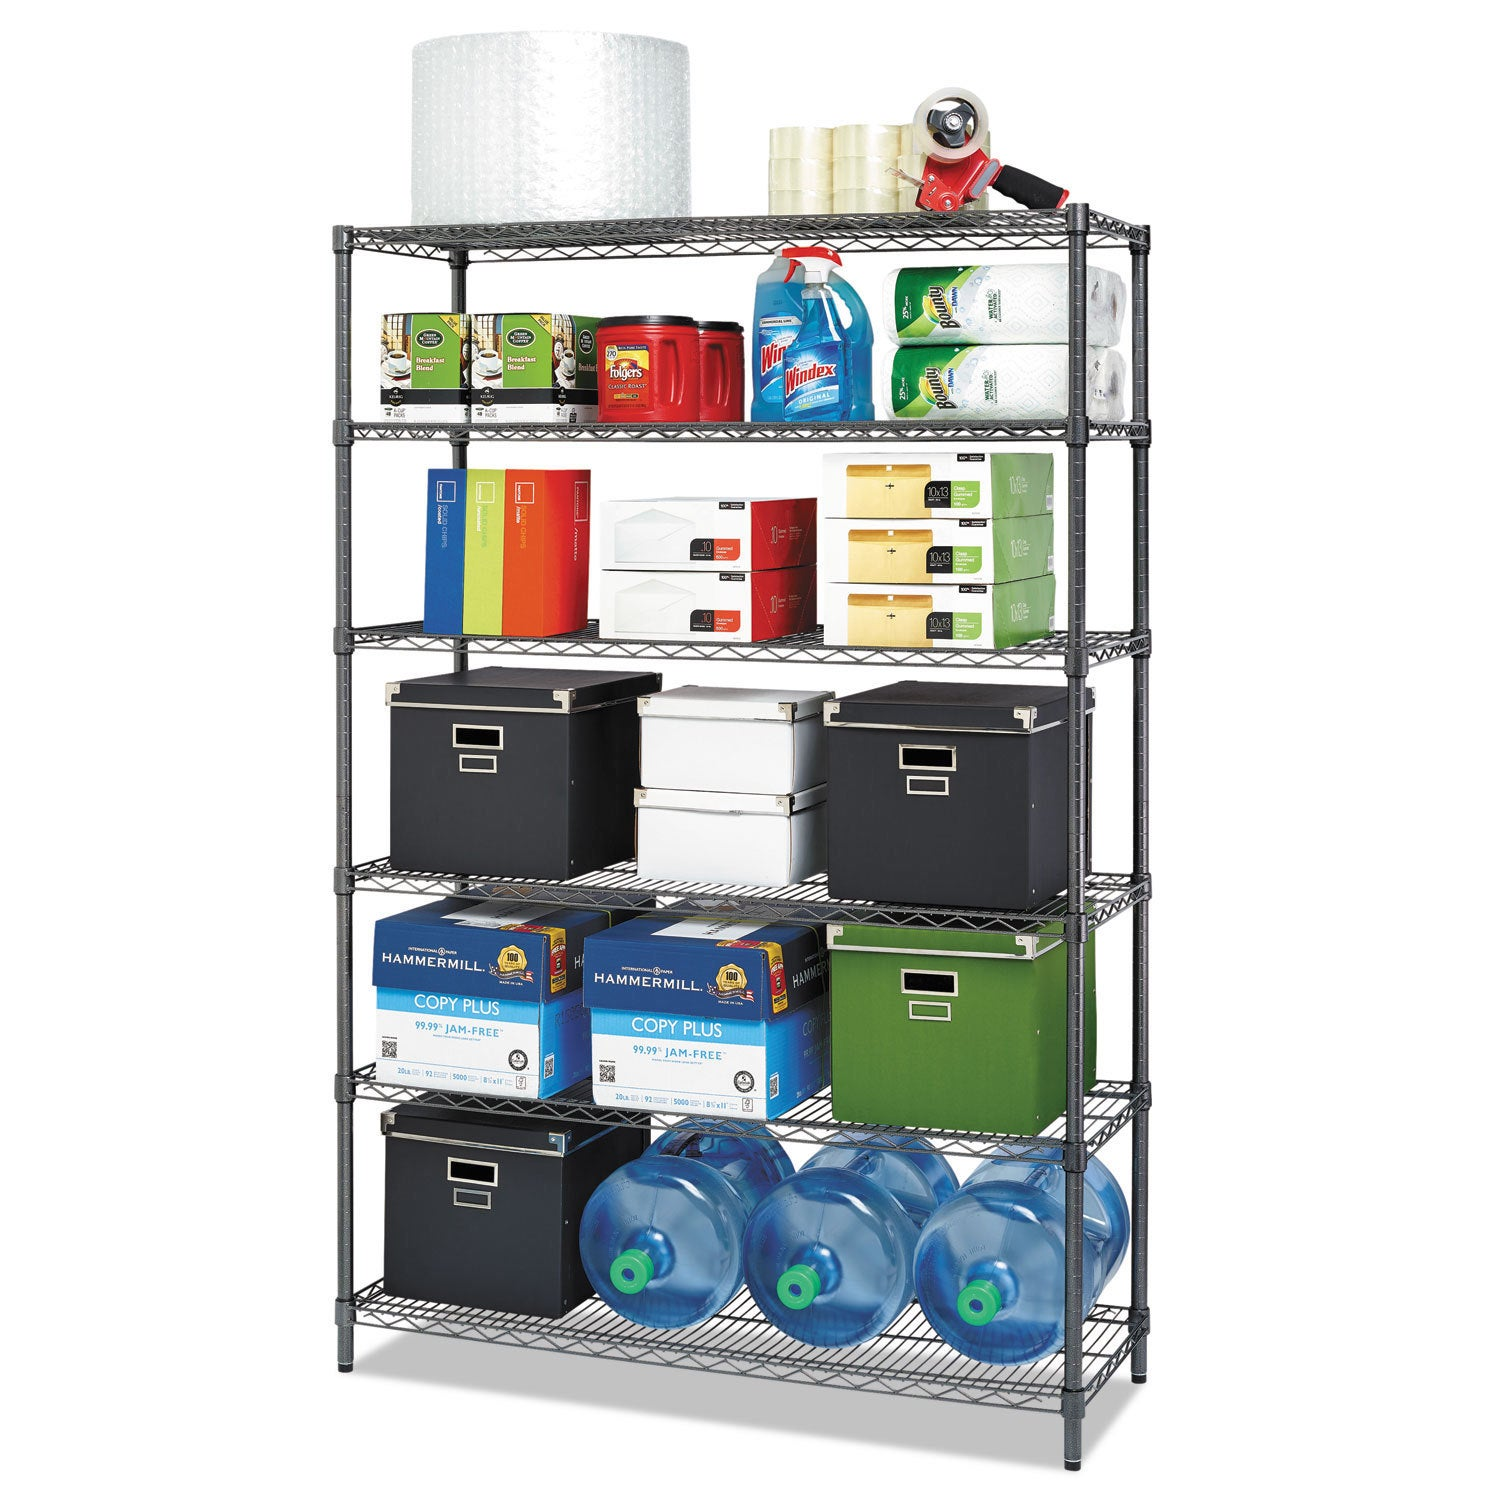 Alera Commercial Wire Shelving Six-Shelf 48-inch wide x 18-inch deep x 72-inch high Black Anthracite (Black Anthracite)